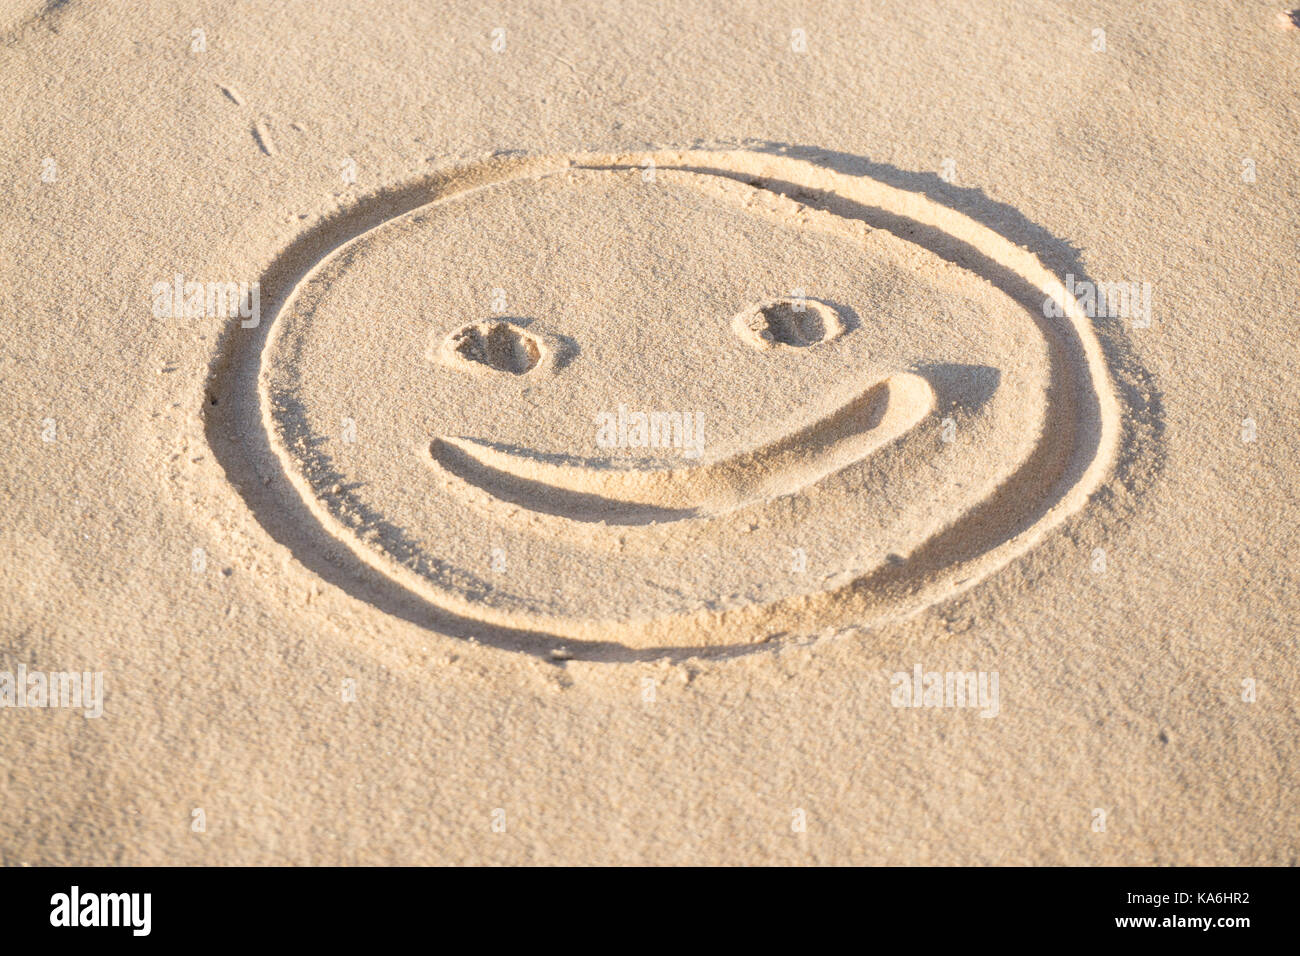 Prints of emoji smile in the sand on the beach of the Baltic Sea in summer: summer is almost gone, waiting for autumn. - Stock Image